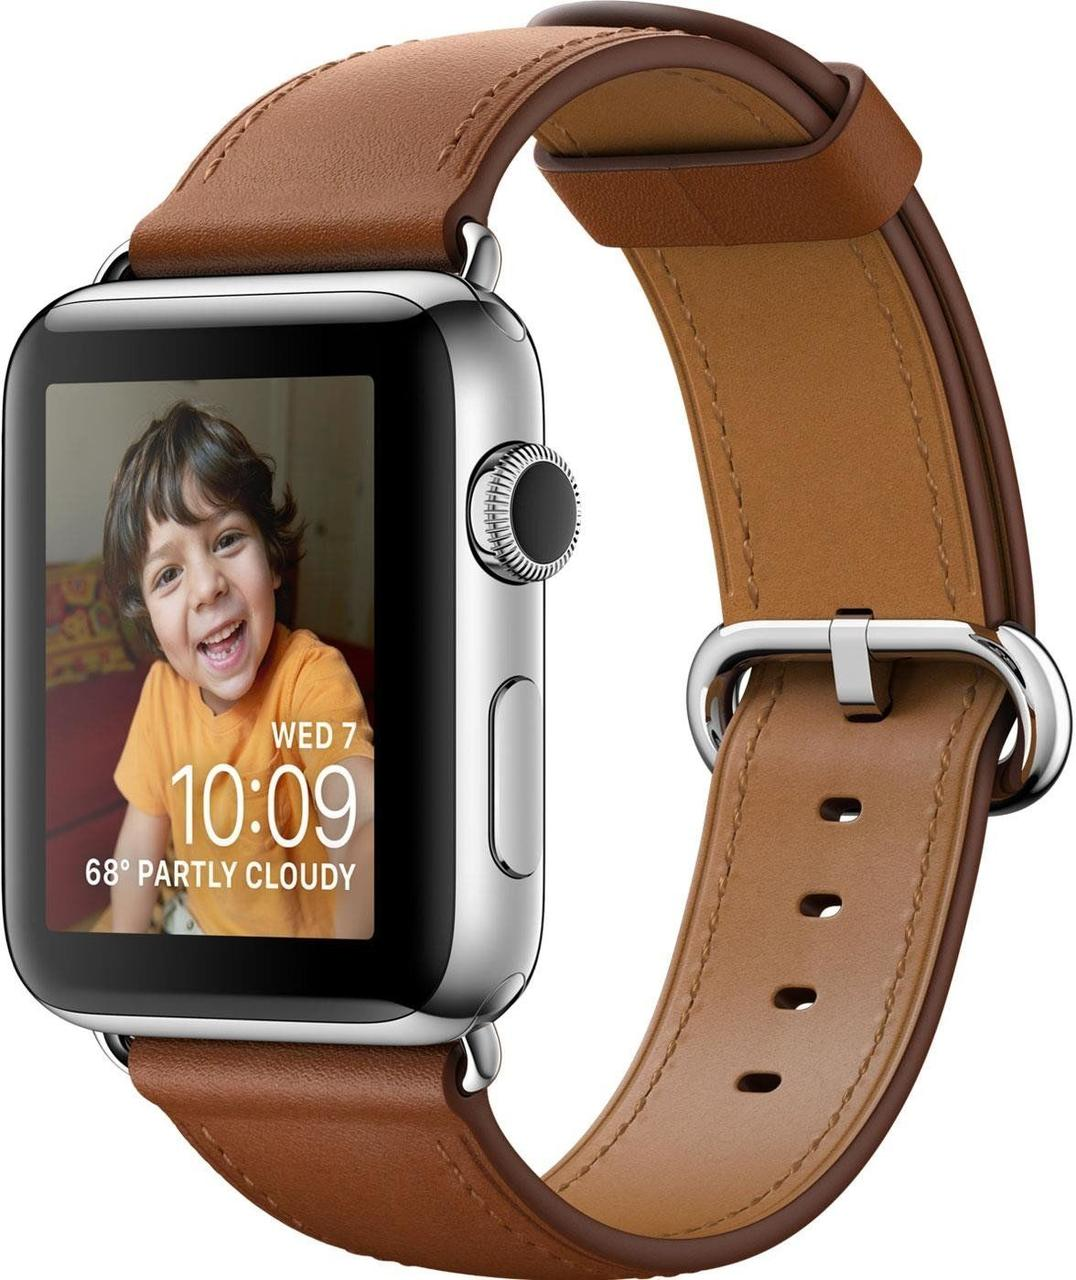 Apple Watch Series 2 42 mm Stainless Steel with Saddle Brown Classic Buckle Band (MNPV2)